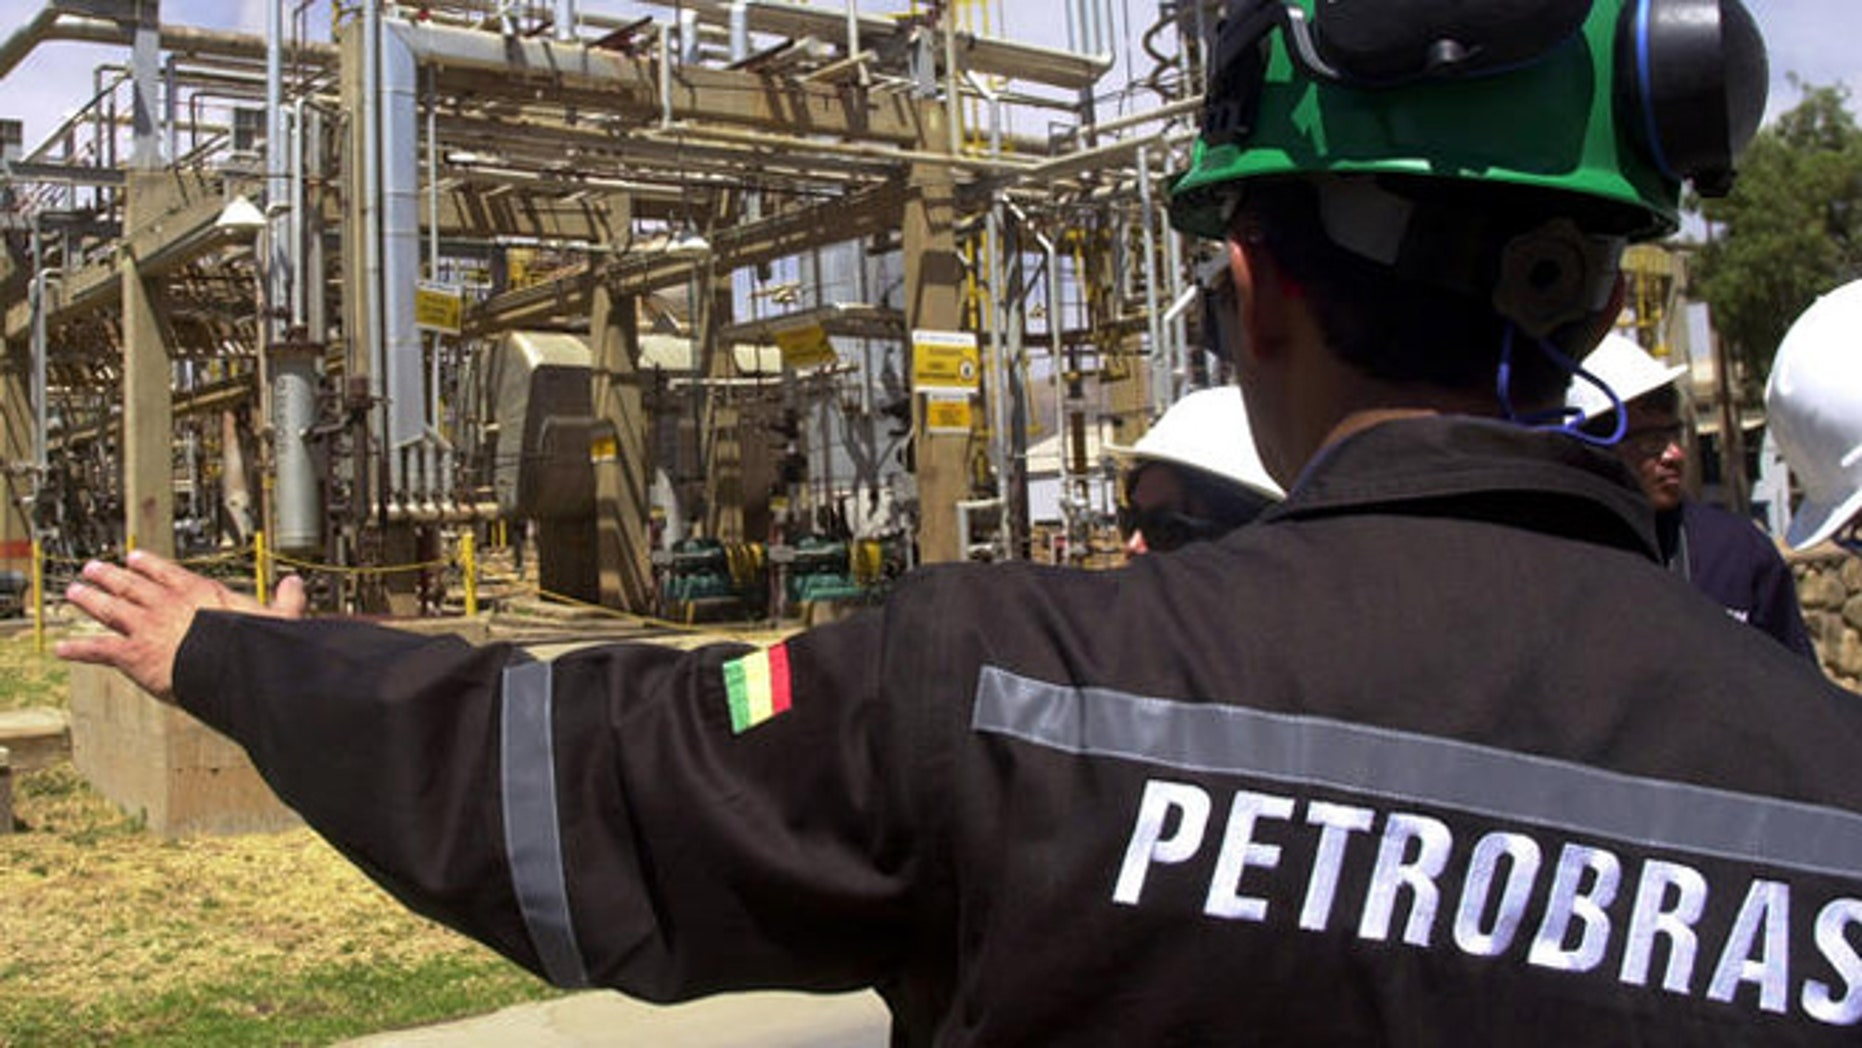 A Bolivian employee of Brazil's oil giant Petrobras subsidiary Petrobras Bolivia  shows a natural gas facility at the Gualberto Villarroel , 8m (about 5 miles) south of Cochabamba, Bolivia, Tuesday, Sept. 5, 2006. The nationalization of Bolivia's hydrocarbons industry took two steps forward this week as the government opened long-awaited contract negotiations with foreign petroleum companies while collecting the first round of higher royalties it now charges those firms. Representatives of the French company Total S.A. sat down with Hydrocarbons Ministry officials Tuesday in La Paz to begin drawing up a new contract ceding a majority share of their Bolivian operations to the government, as required by President Evo Morales' May 1 nationalization decree. Contract negotiations with other international firms _ including Brazil's state-owned Petrobras and the Spanish-Argentine firm Repsol YPF _ are expected to follow.(AP Photo/Nano Cartagena)